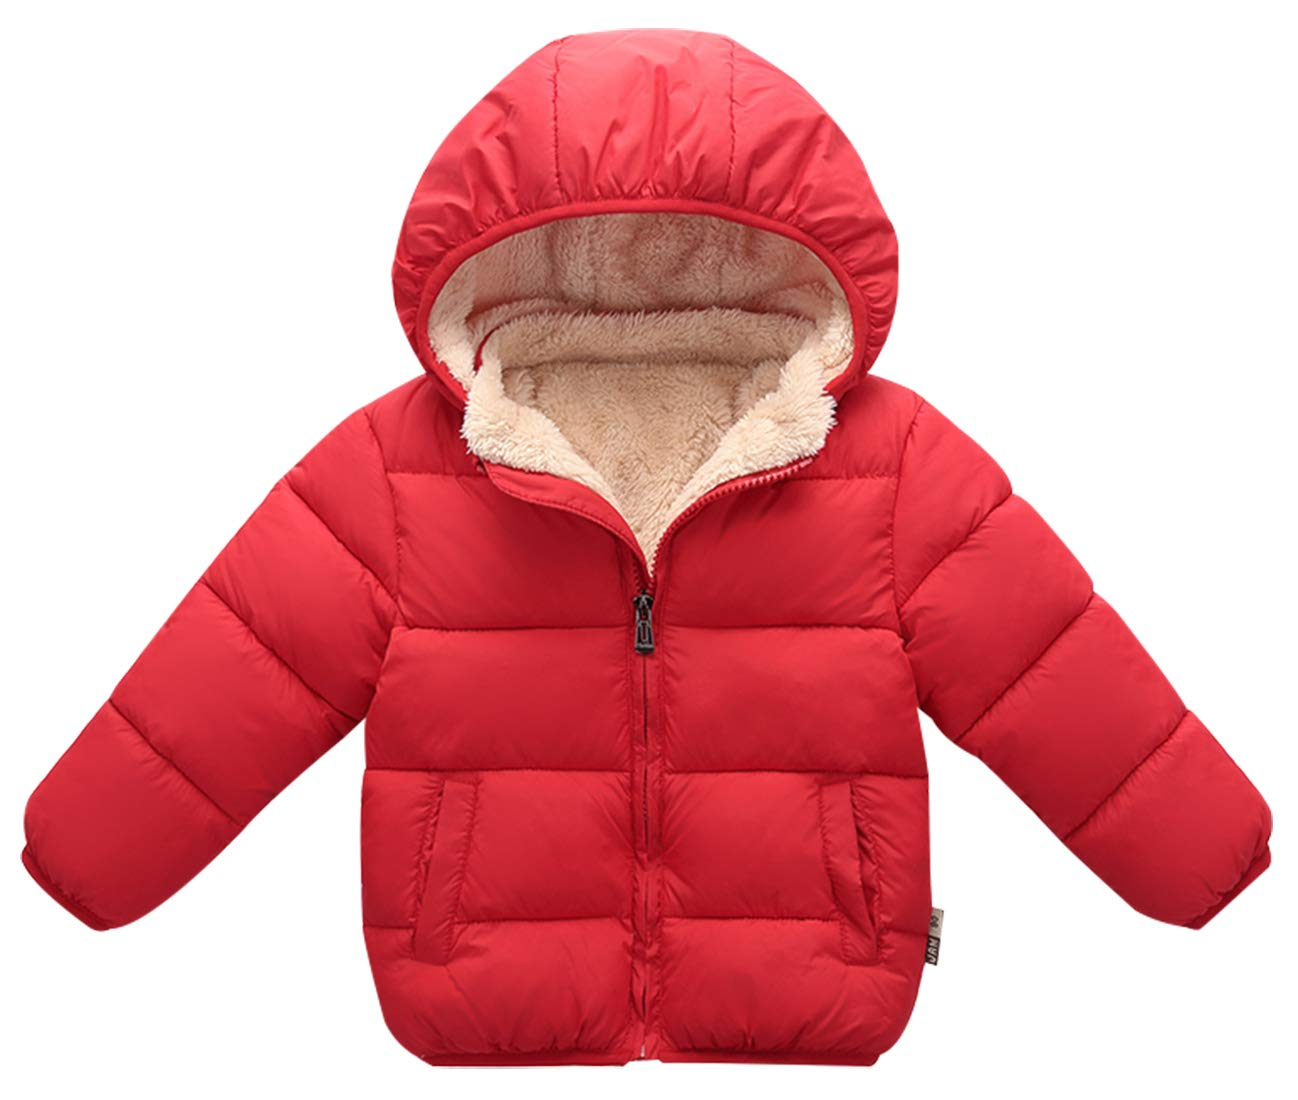 Baby Girls Hooded Down Jacket Winter Lightweight Snowsuit Toddler Long Sleeve Down Coat Red 5T 6T by Happy Cherry